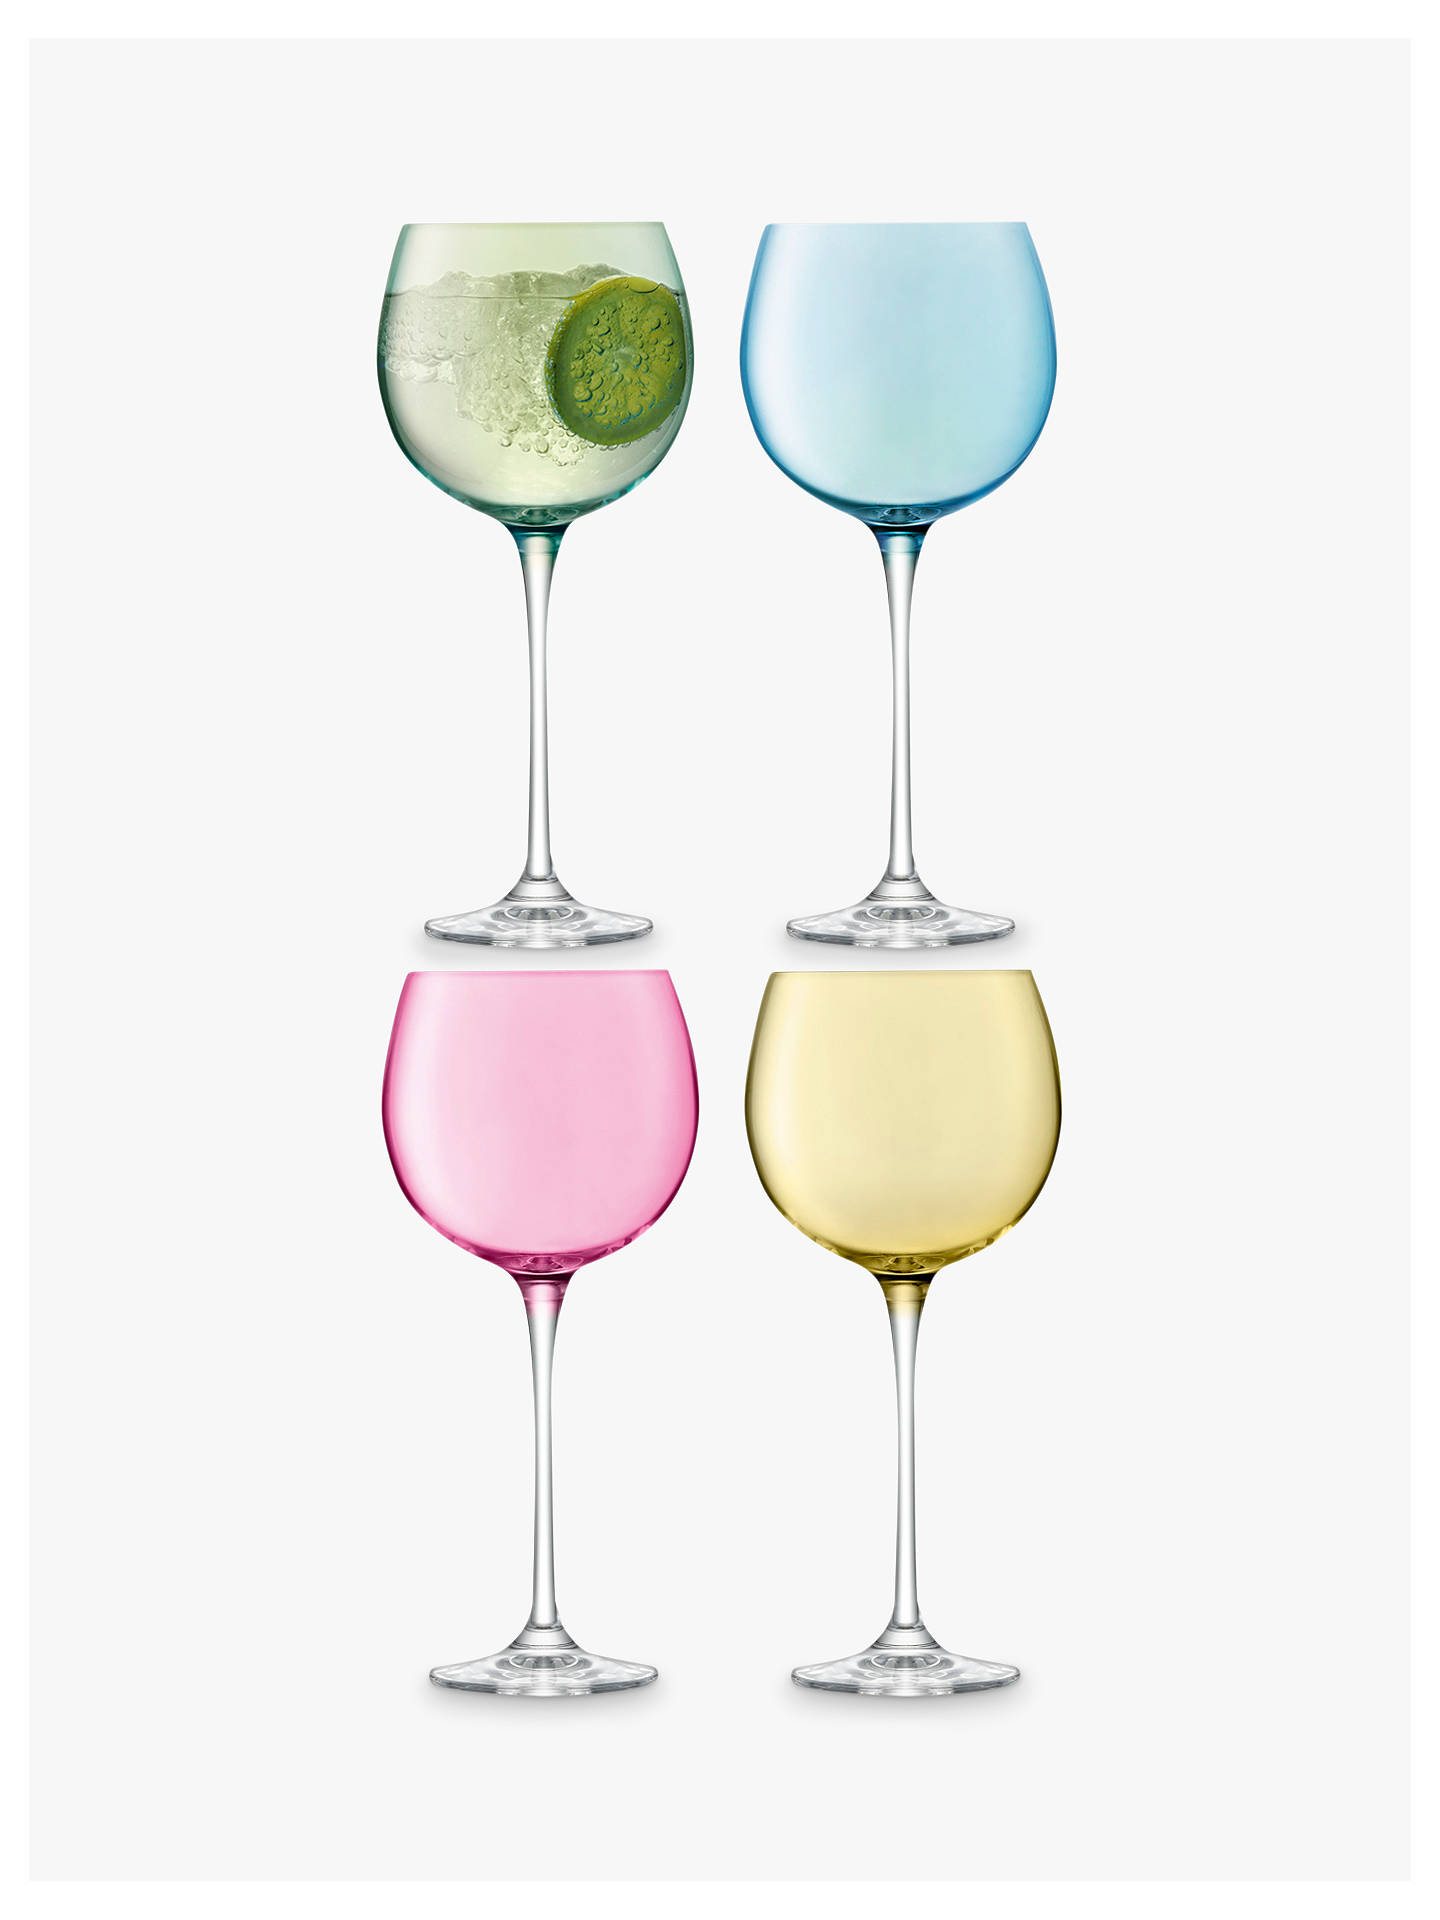 Buy LSA International Polka Large Wine / Gin Glasses, Assorted, 525ml, Set of 4 Online at johnlewis.com